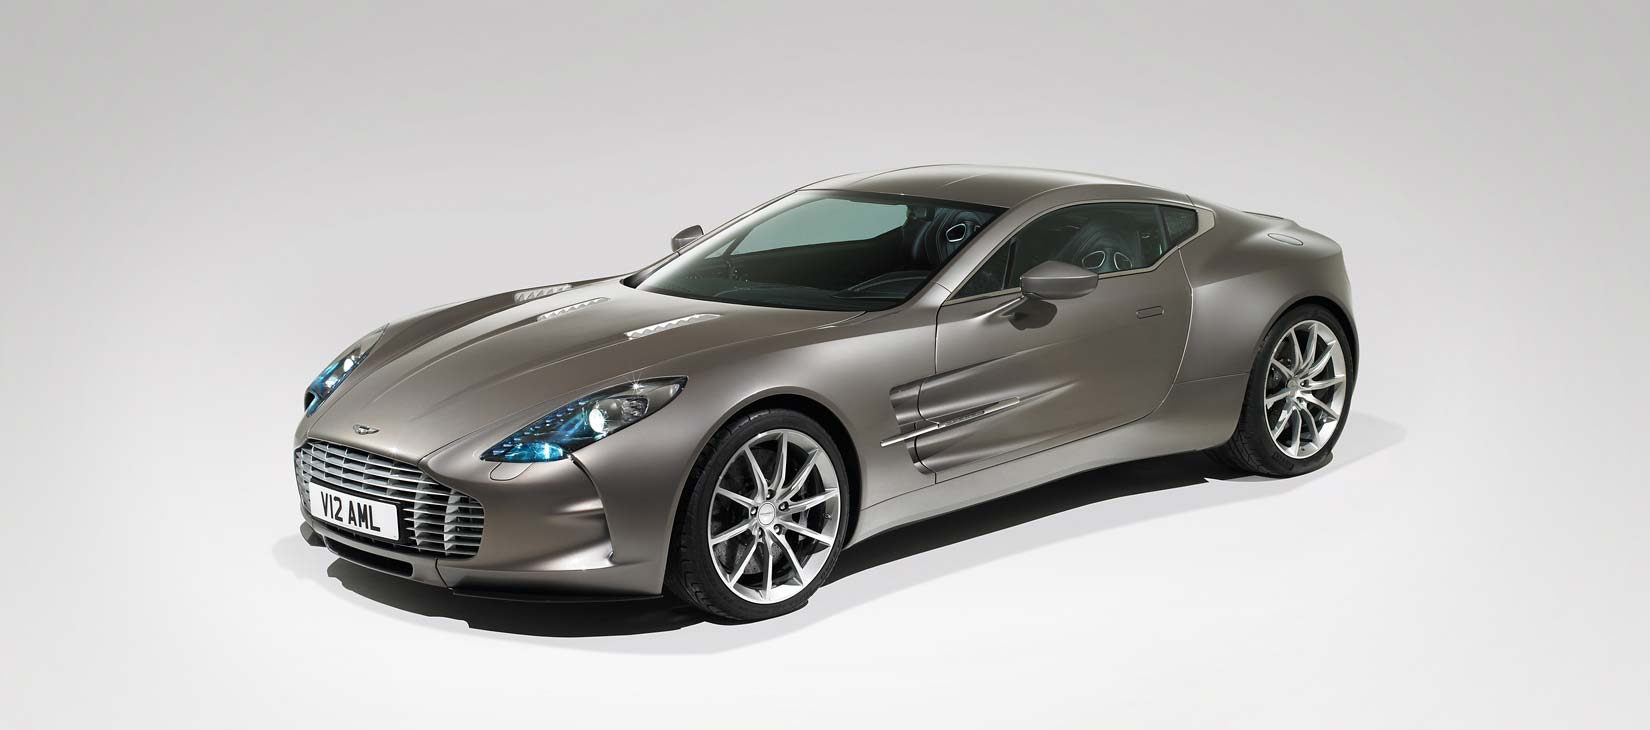 Aston Martin one 77 rga_astonmartin_brochureimage_one-77